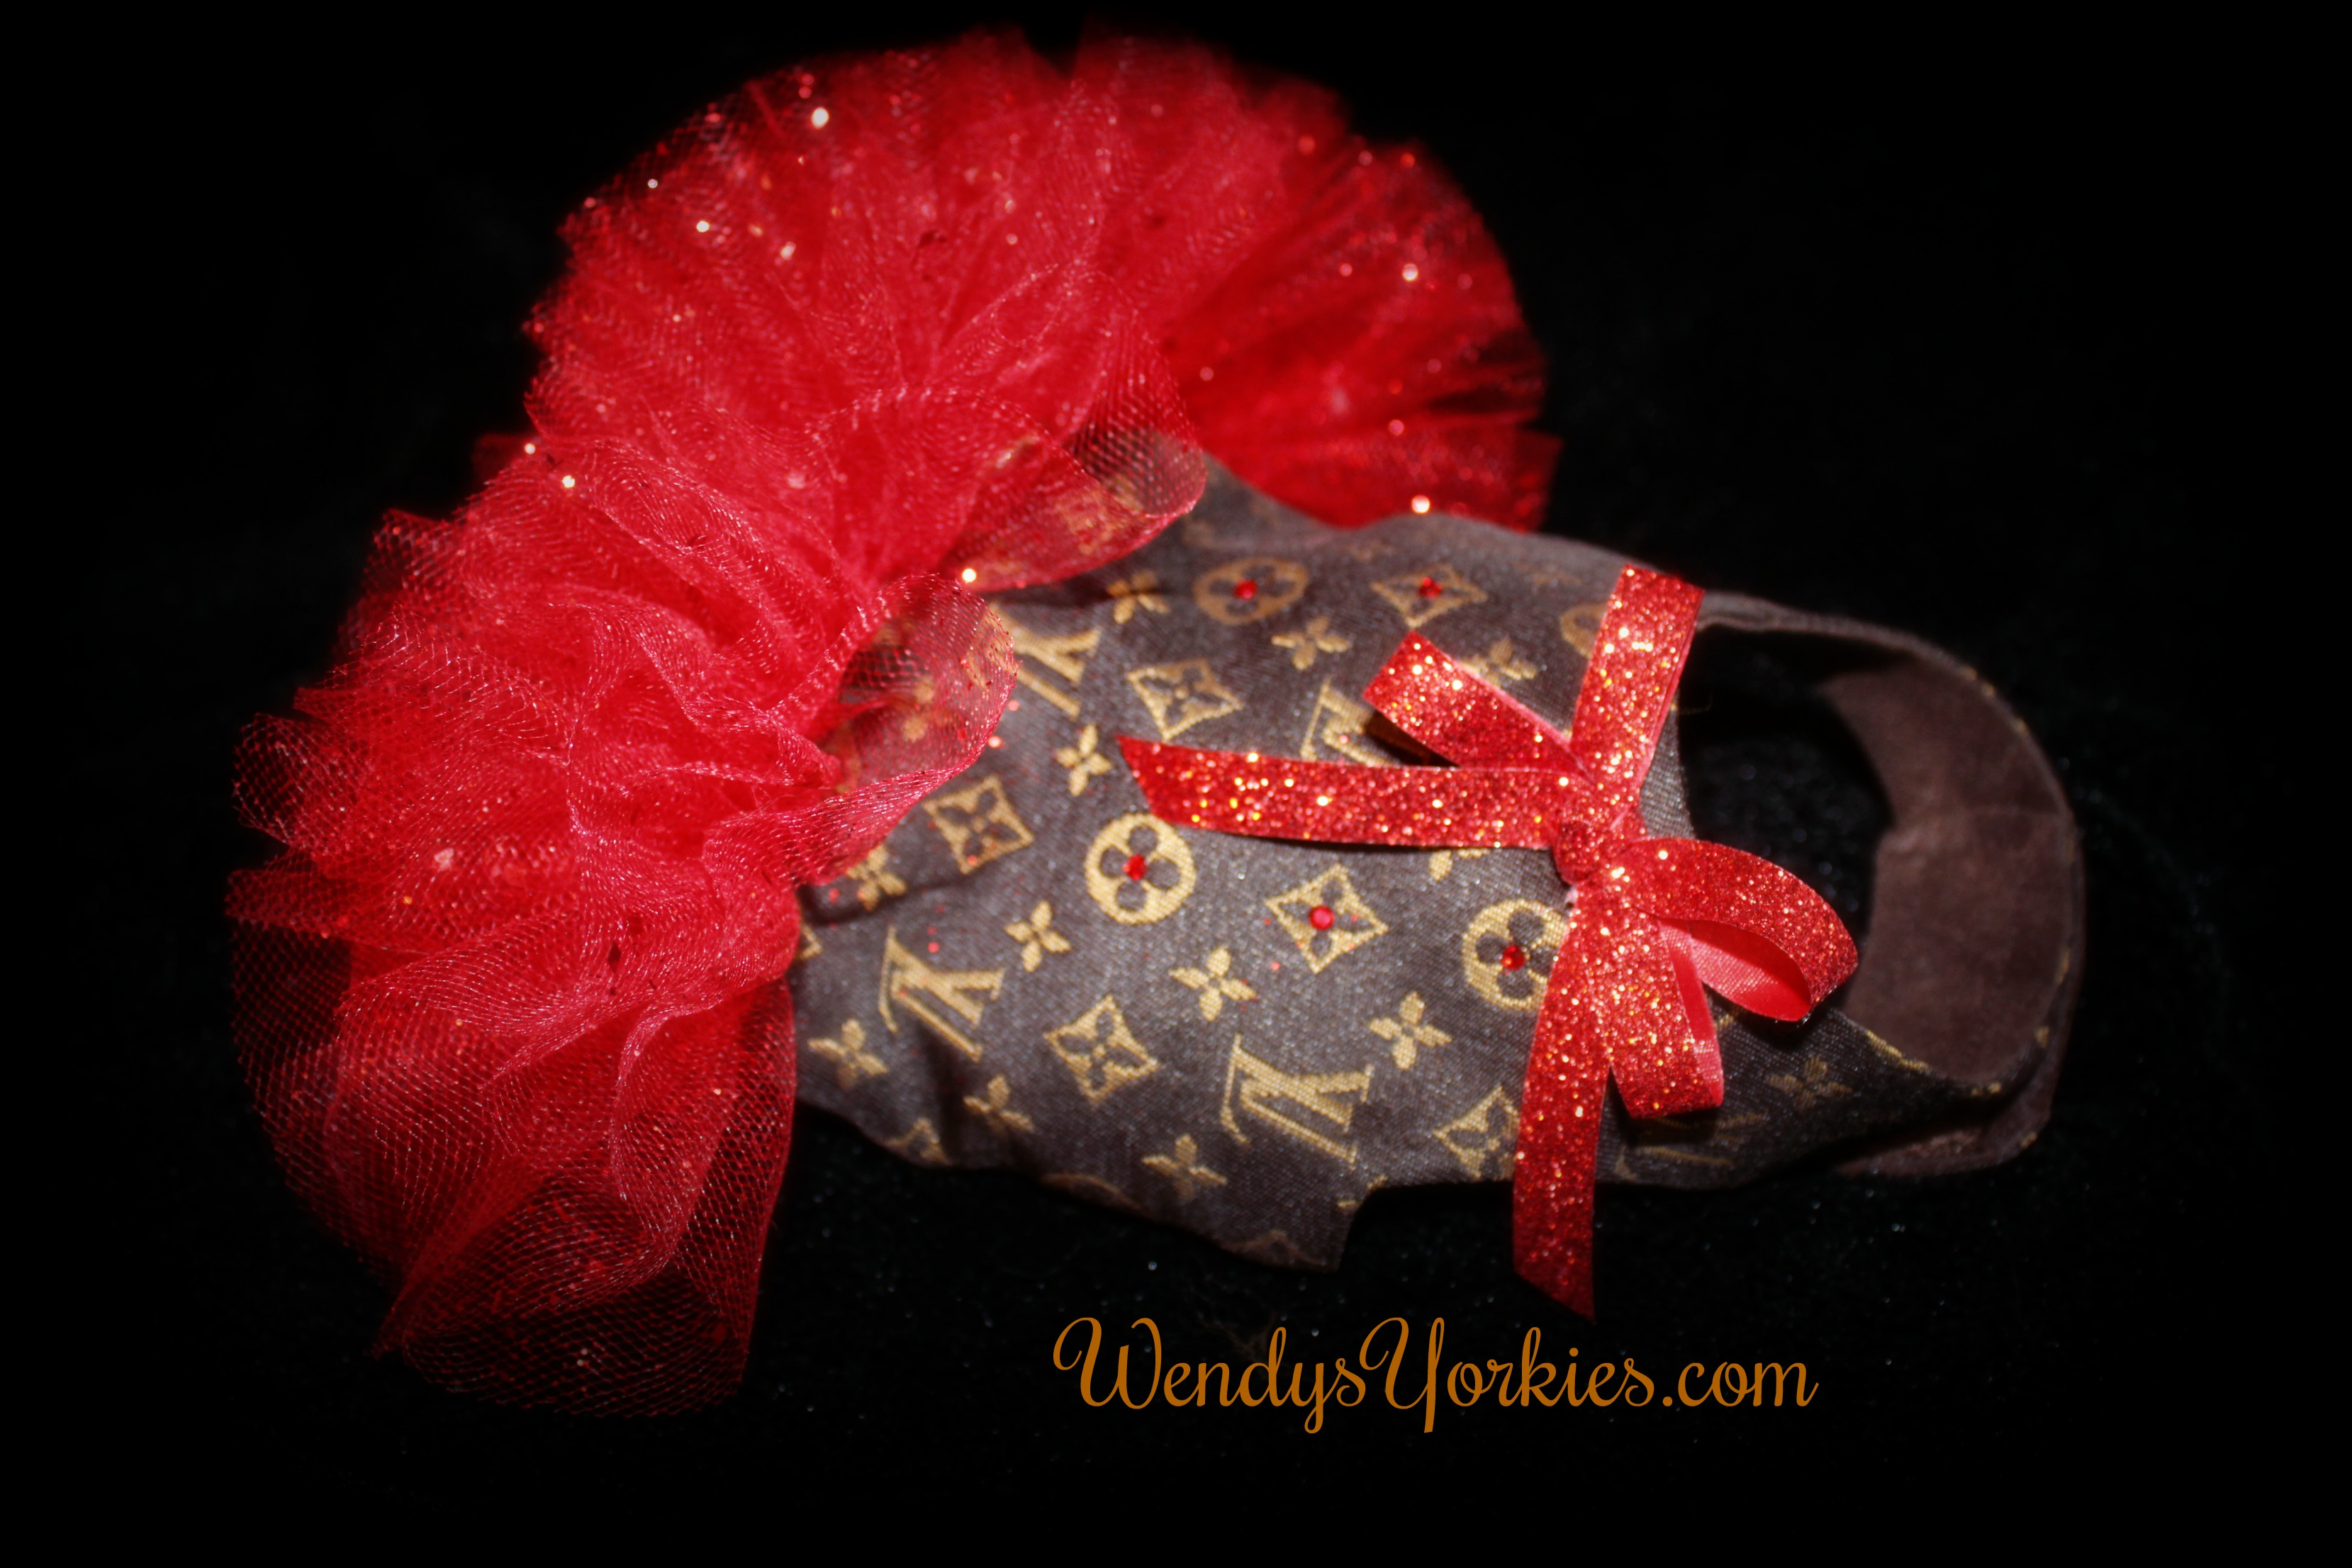 Yorkie designer dress, Red Tutu, WendysYorkies.com